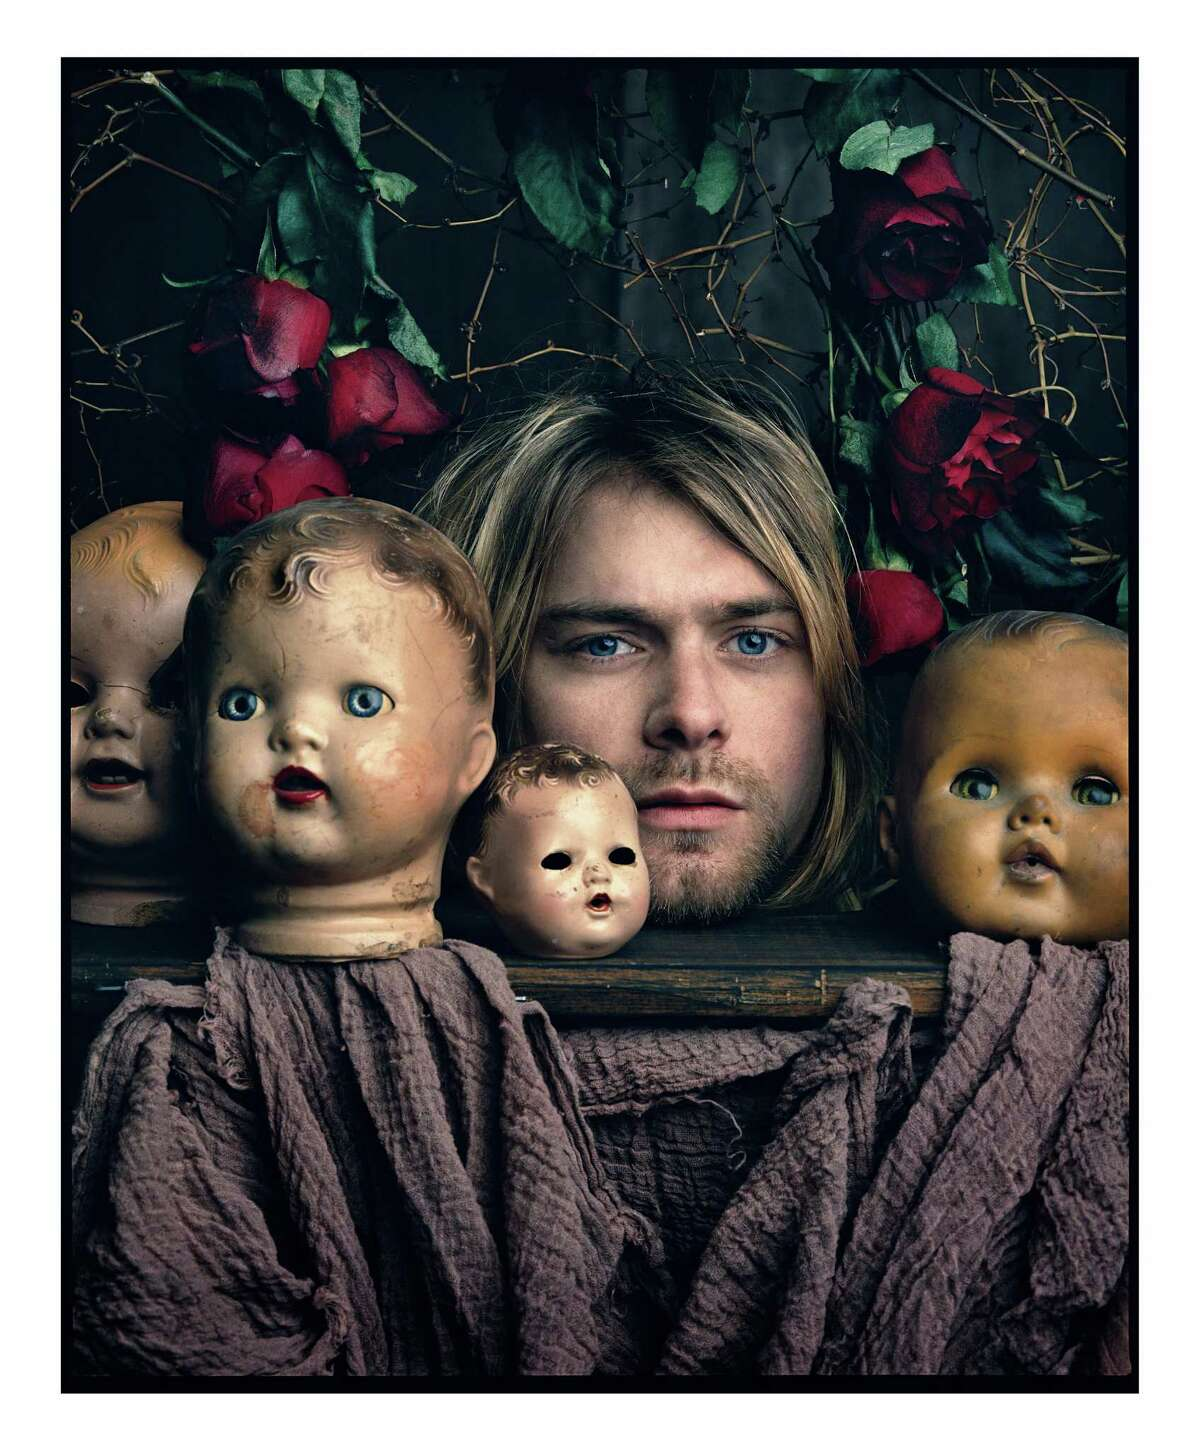 Kurt Cobain photographed by Mark Seliger.